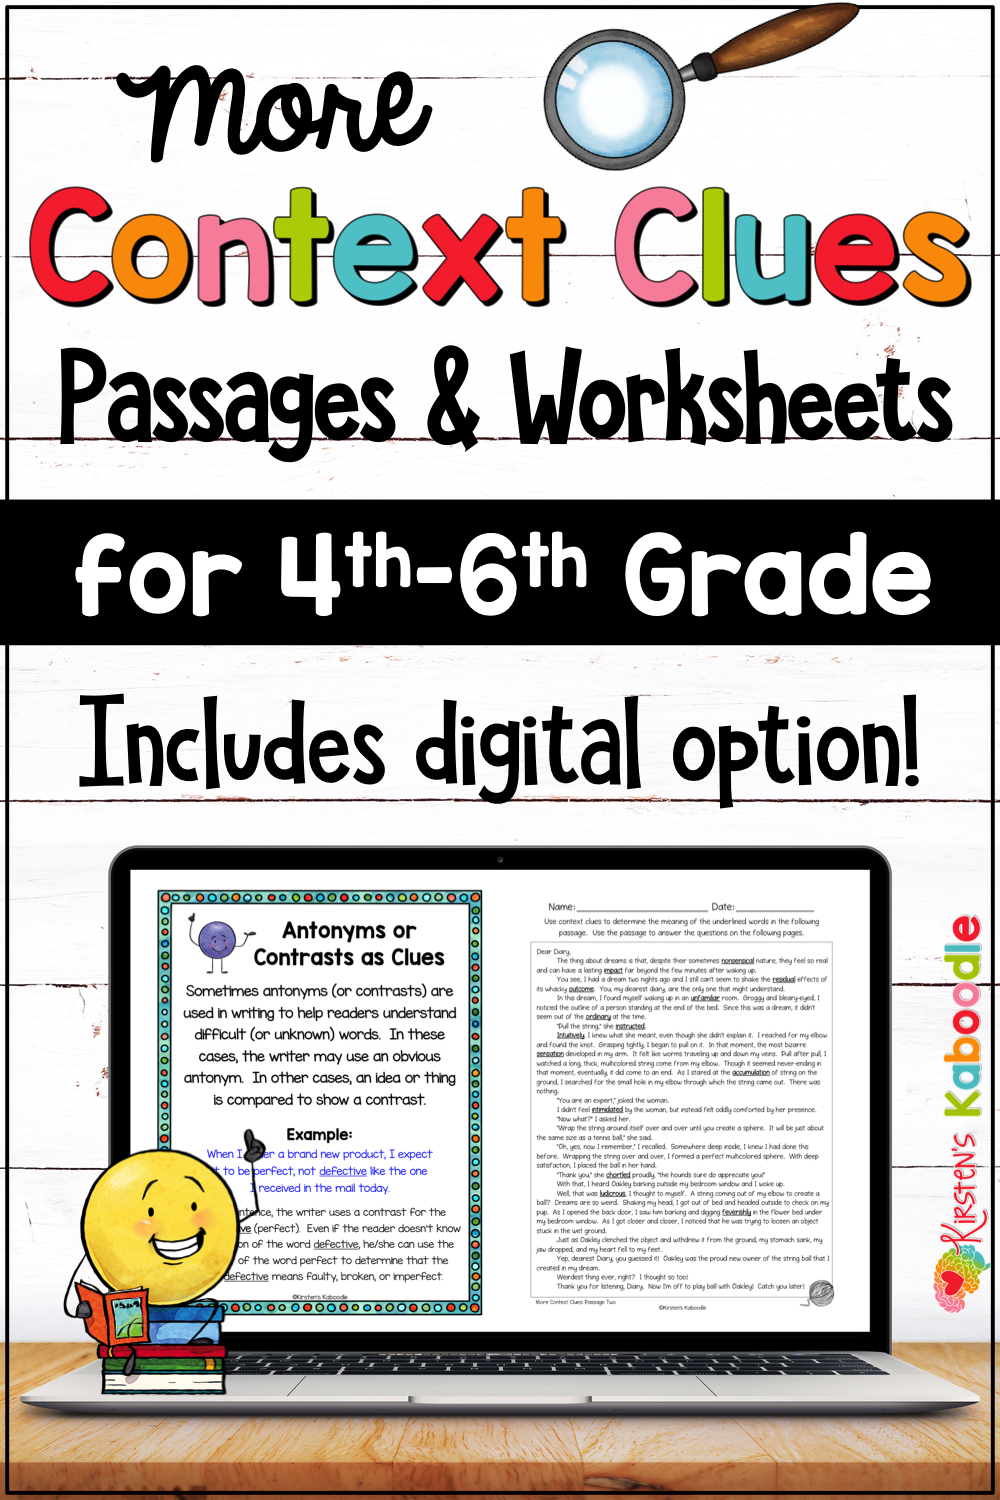 Context Clues Activities And Passages For 4th 5th And 6th Grade With Digital Option Context Clues Activities Context Clues Passages Context Clues [ 1500 x 1000 Pixel ]